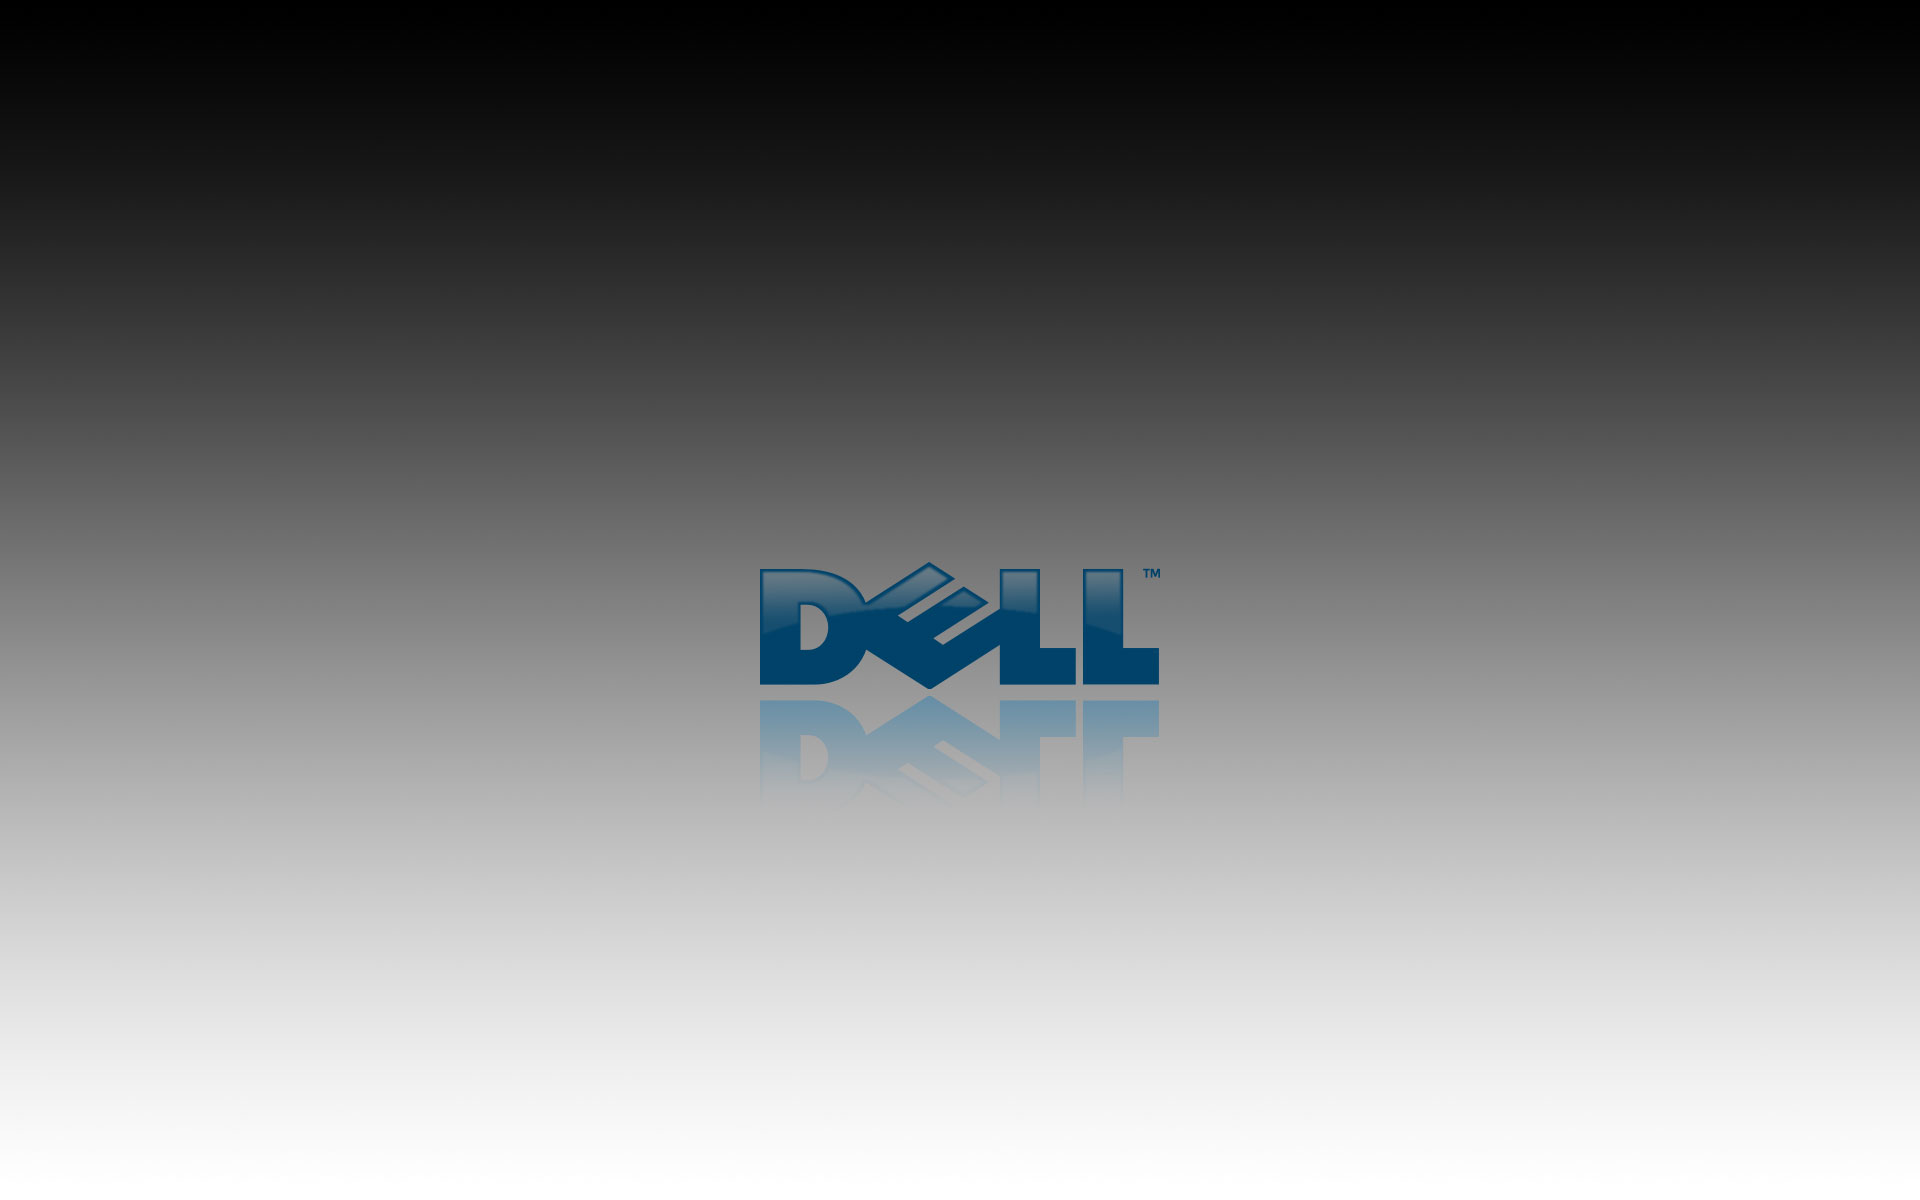 dell wallpaper 1280x800 wallpaper 948546